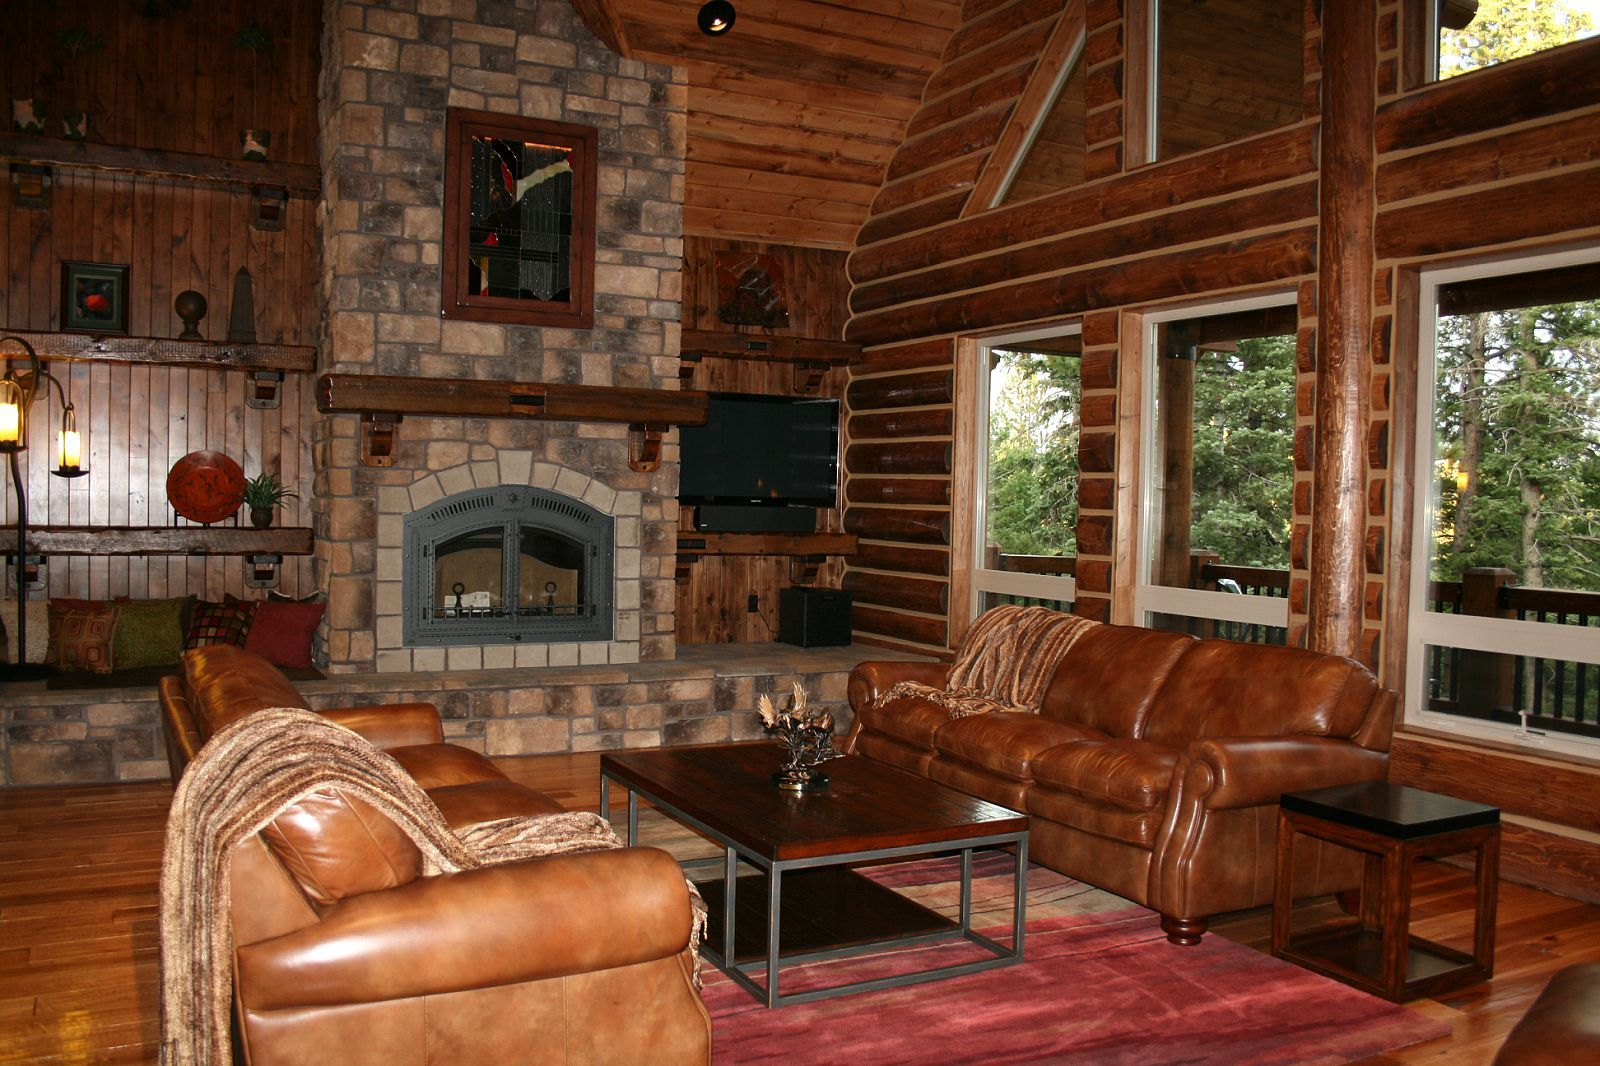 Log Cabin Design Ideas ward young sacramento family room Log Home Floor Plans